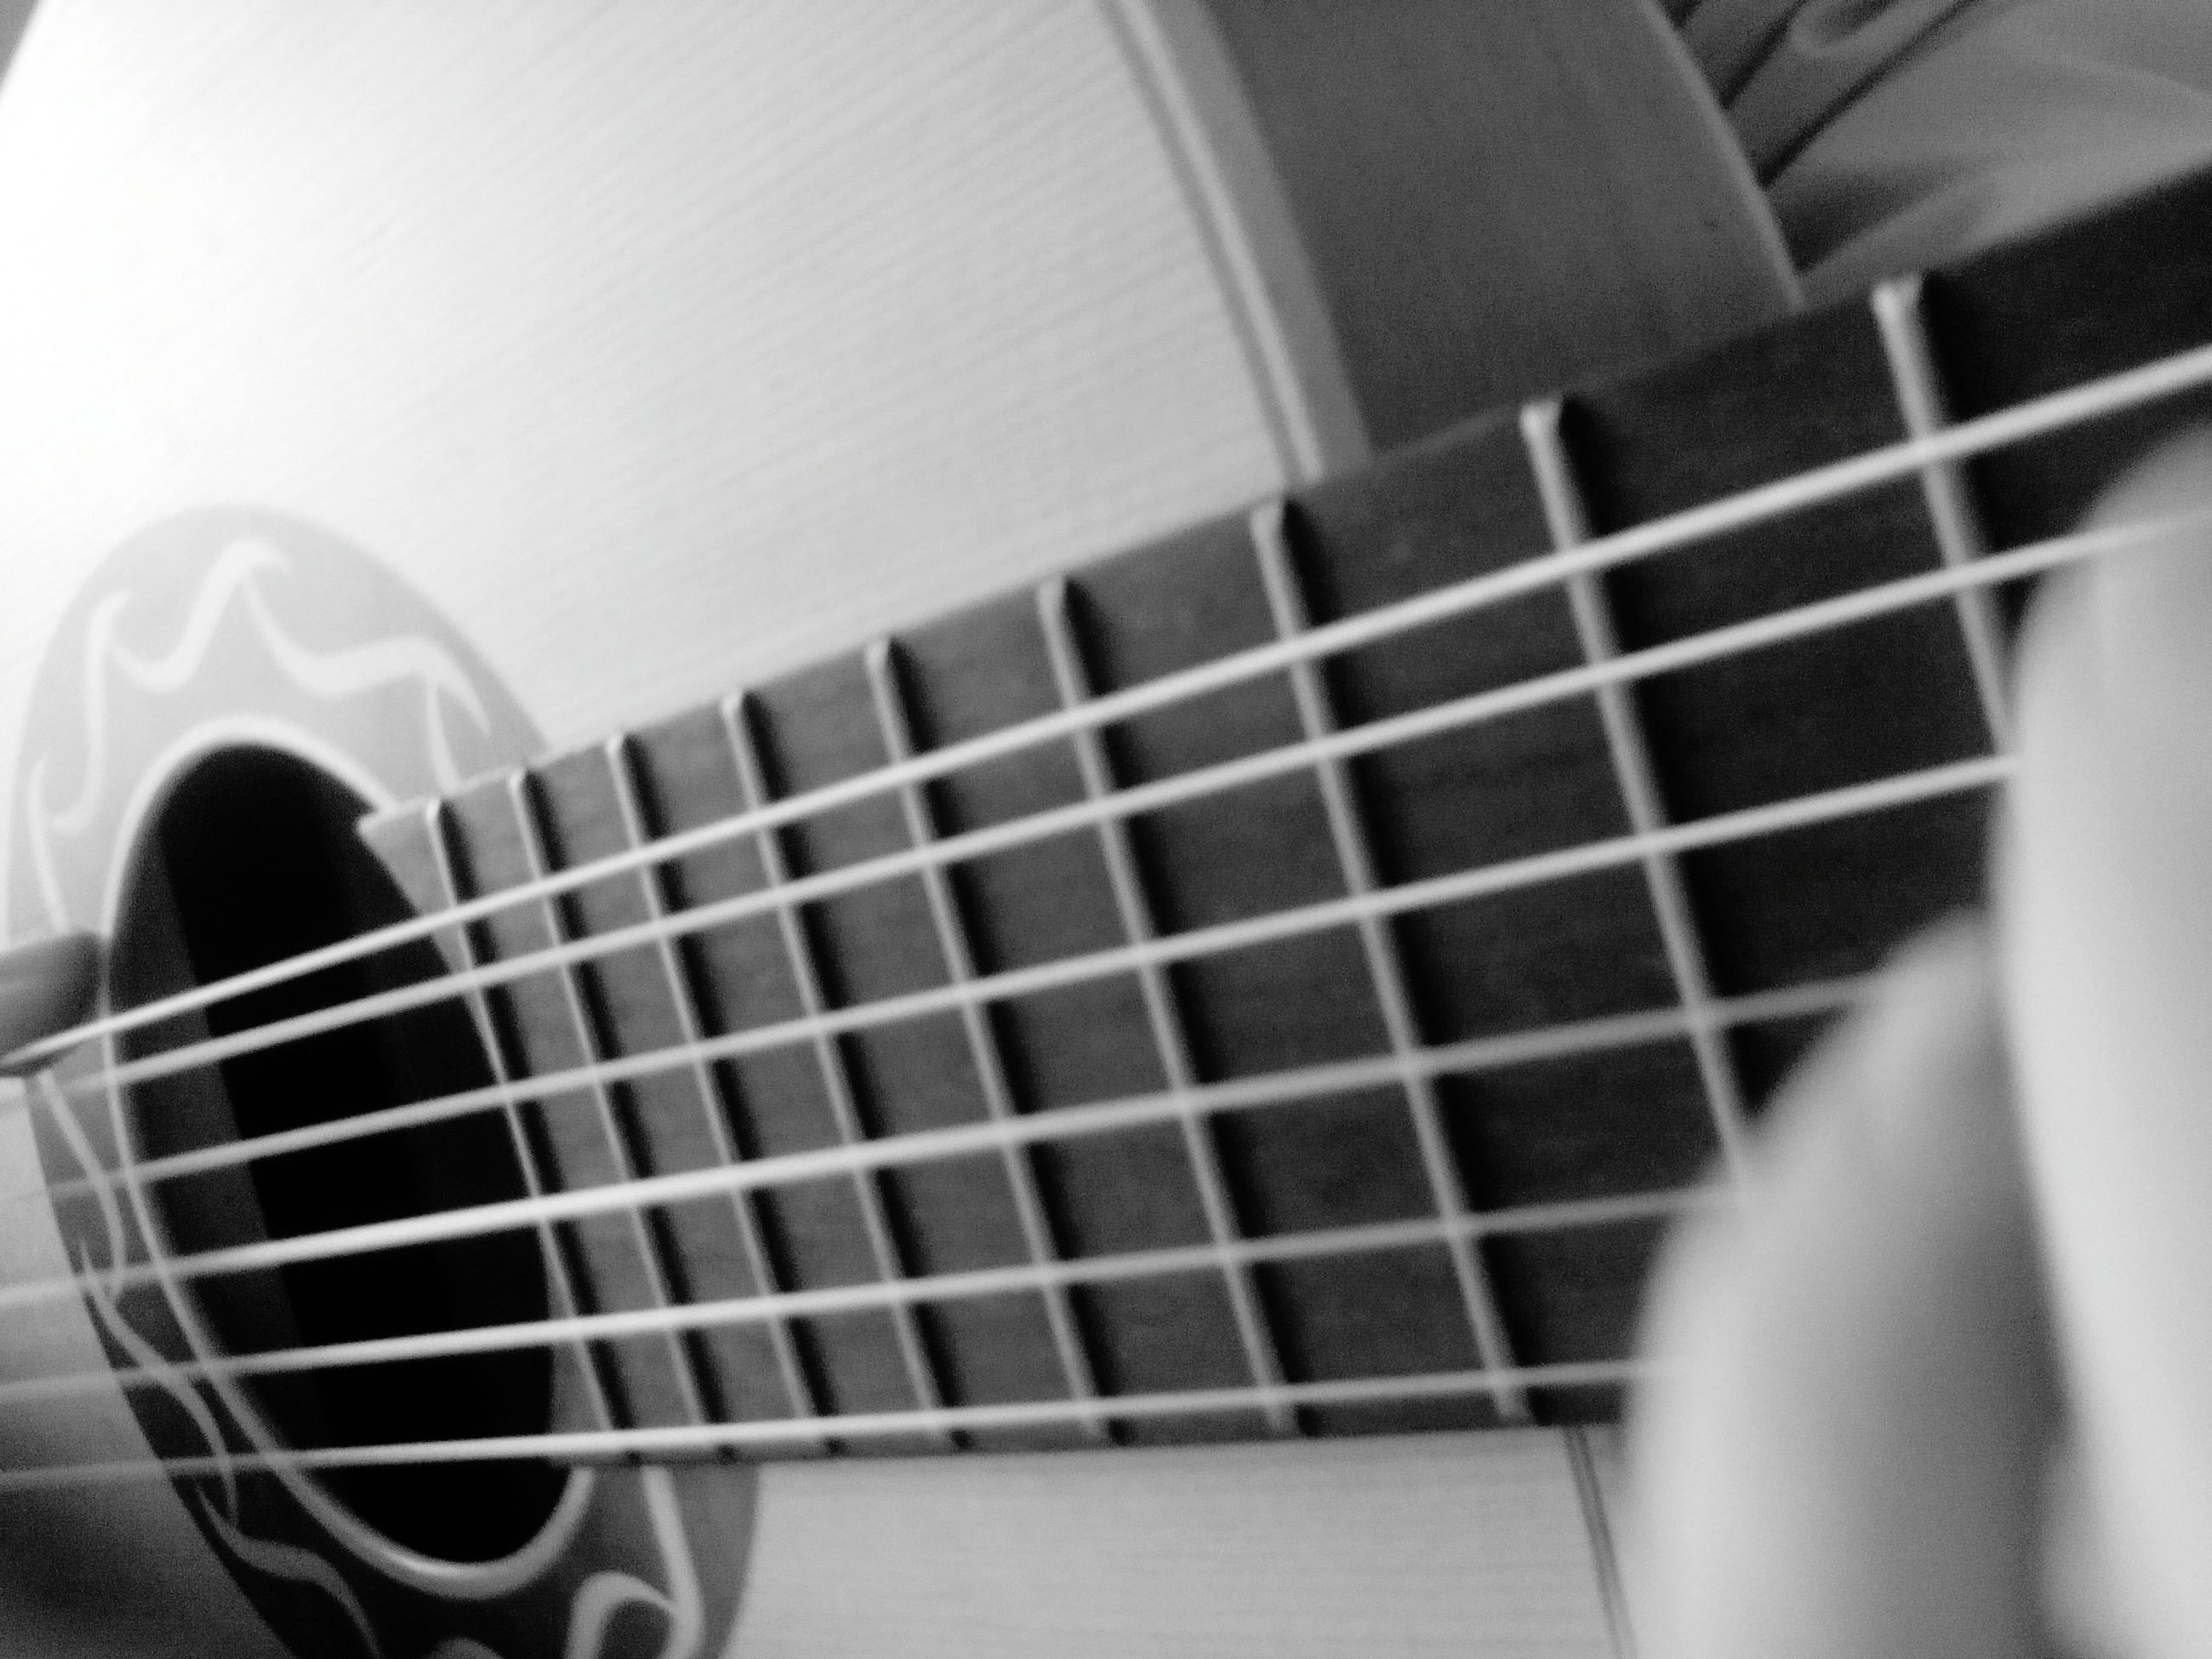 indoors, music, musical instrument, guitar, arts culture and entertainment, musical instrument string, close-up, selective focus, musical equipment, technology, communication, high angle view, focus on foreground, part of, wireless technology, hobbies, lifestyles, men